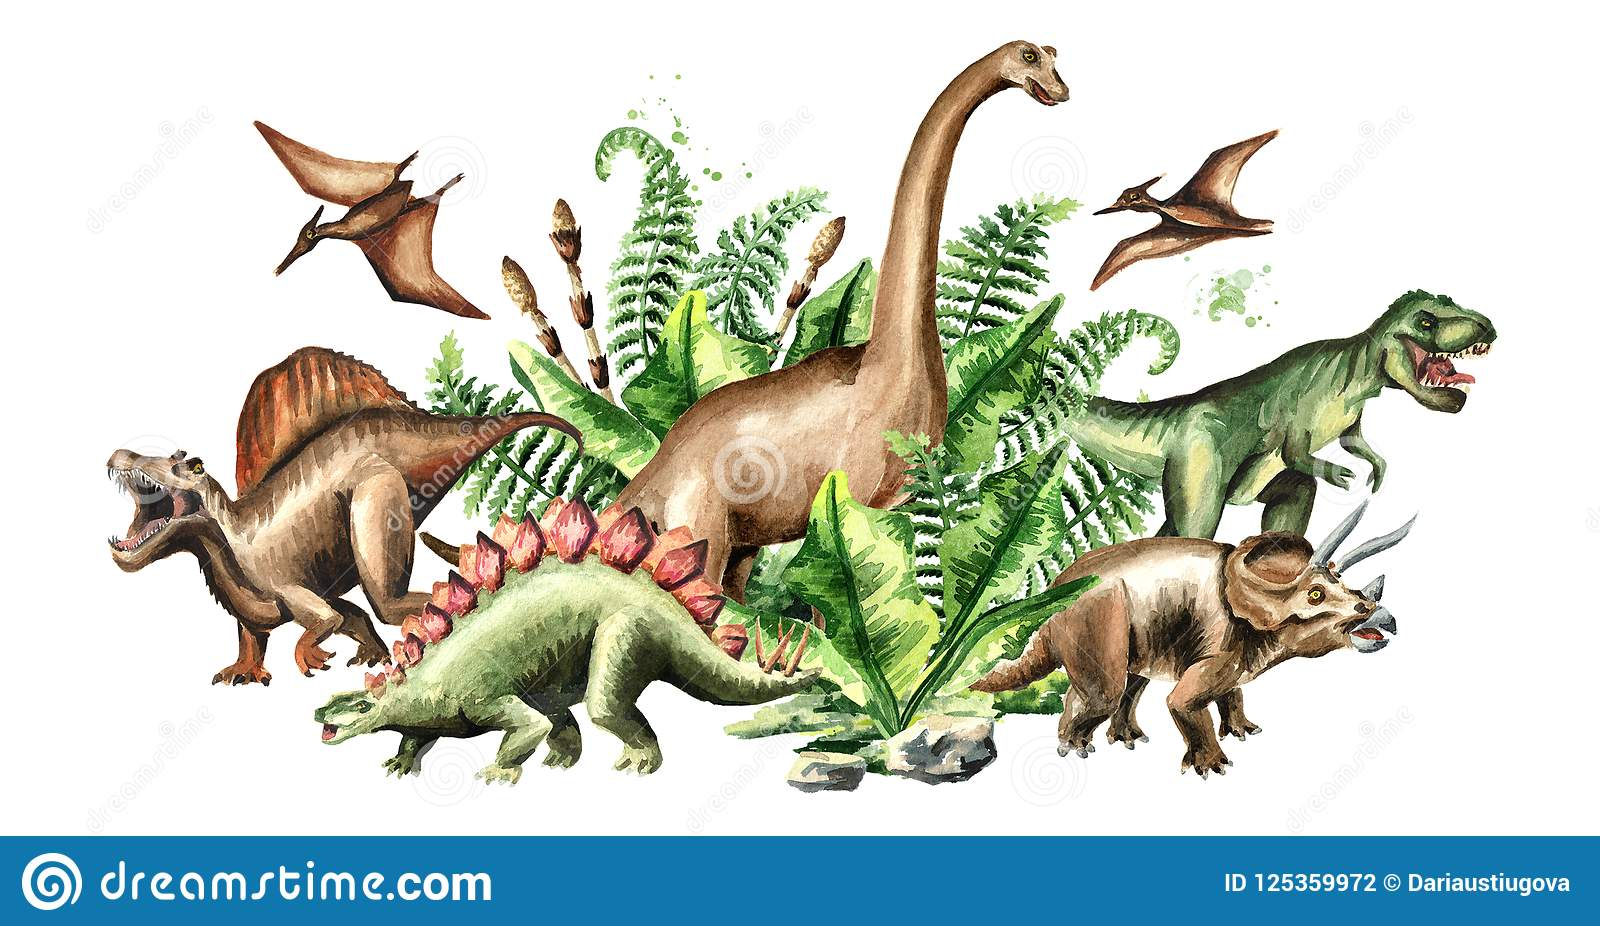 Group of dinosaurs with prehistoric plants. Watercolor hand drawn illustration isolated on white background.